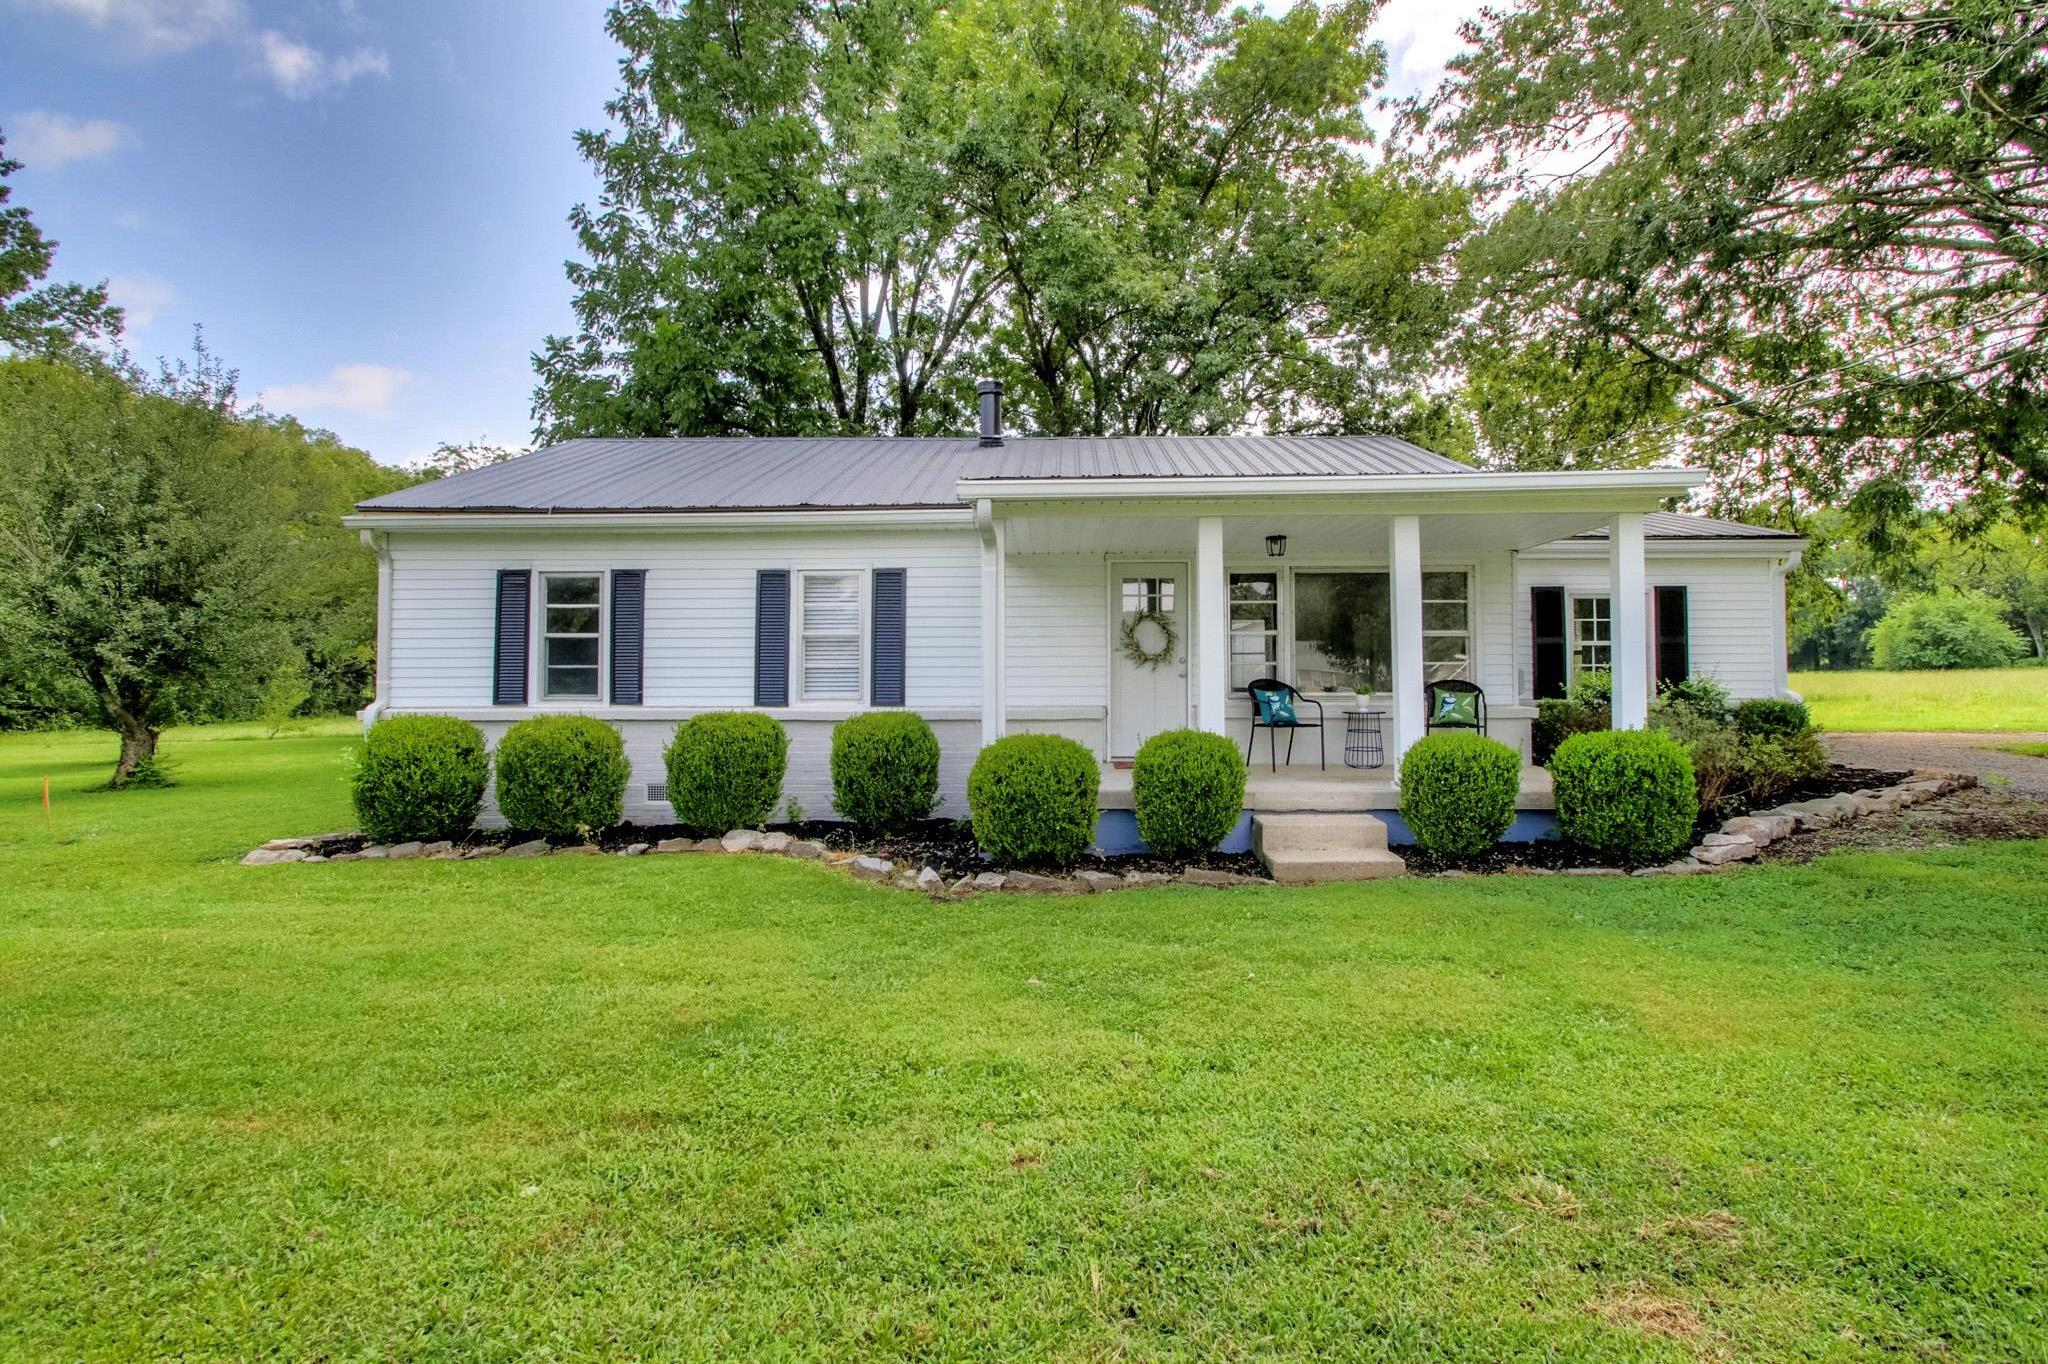 545 Bellwood Road, Lebanon, TN 37087 - Lebanon, TN real estate listing